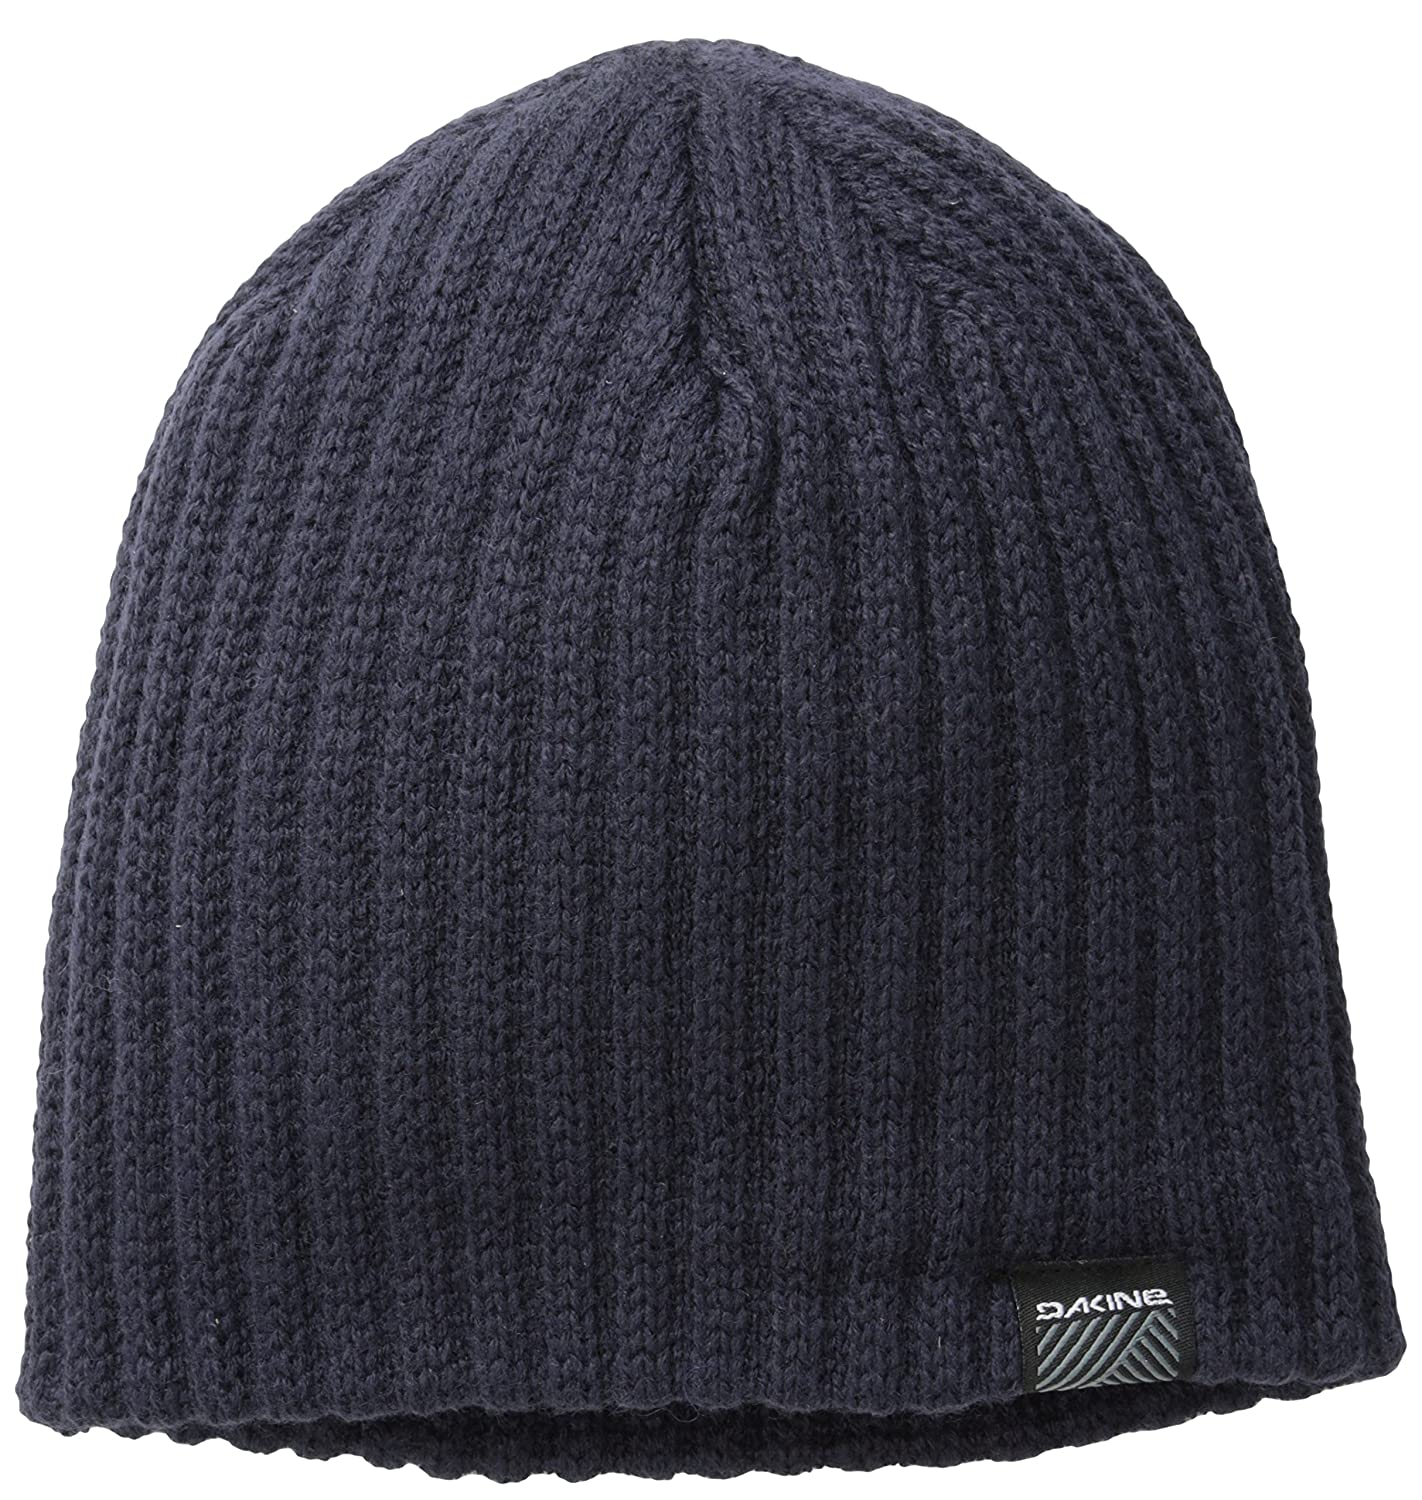 15f5b625fdf Dale of Norway Lillehammer Hat Black One Size Dale of Norway AS 48051F  Beanies